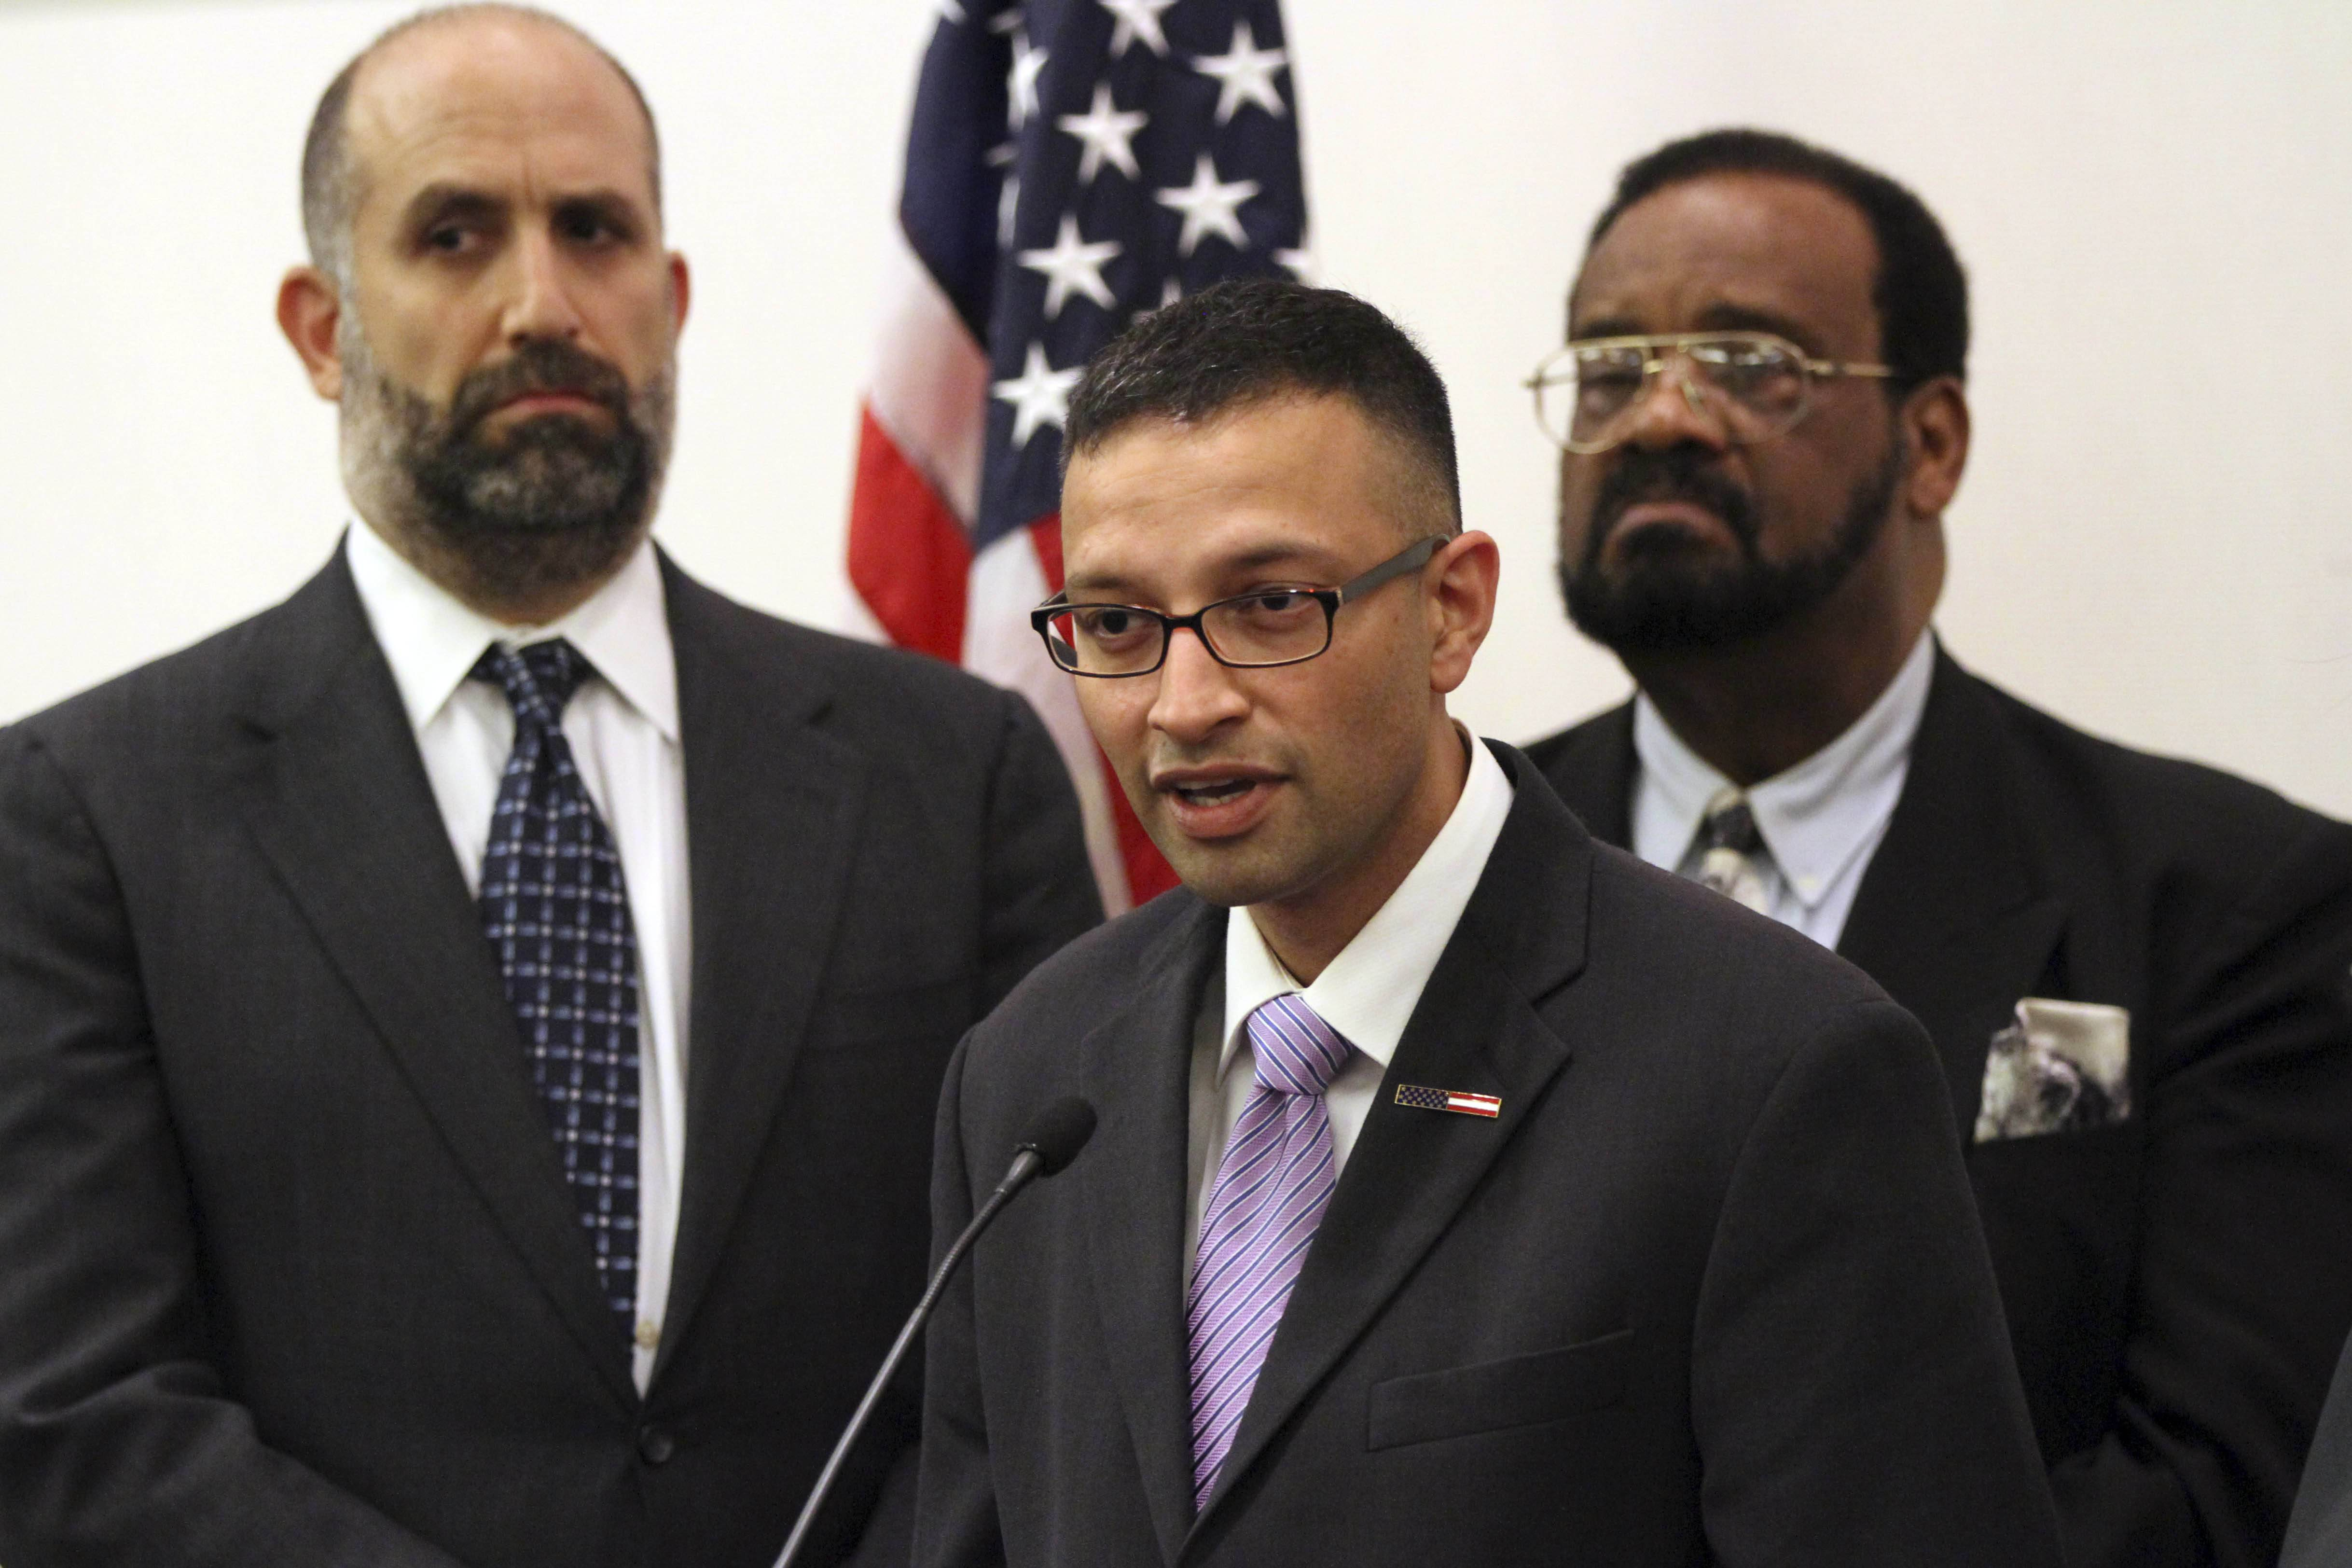 Syed Farhaj Hassan, center, is joined by Glenn Katon, left, legal director of Muslim Advocates, and Imam Abdul Kareem Muhammad. Hassan and Muhammad are two of eight Muslims who filed a federal lawsuit in New Jersey on grounds that the New York Police Department's surveillance programs on New Jersey Muslims was unconstitutional, because it focused on religion, national origin and race. A federal judge on Thursday, Feb. 20, 2014 struck down Hassan and Muhammad's lawsuit.